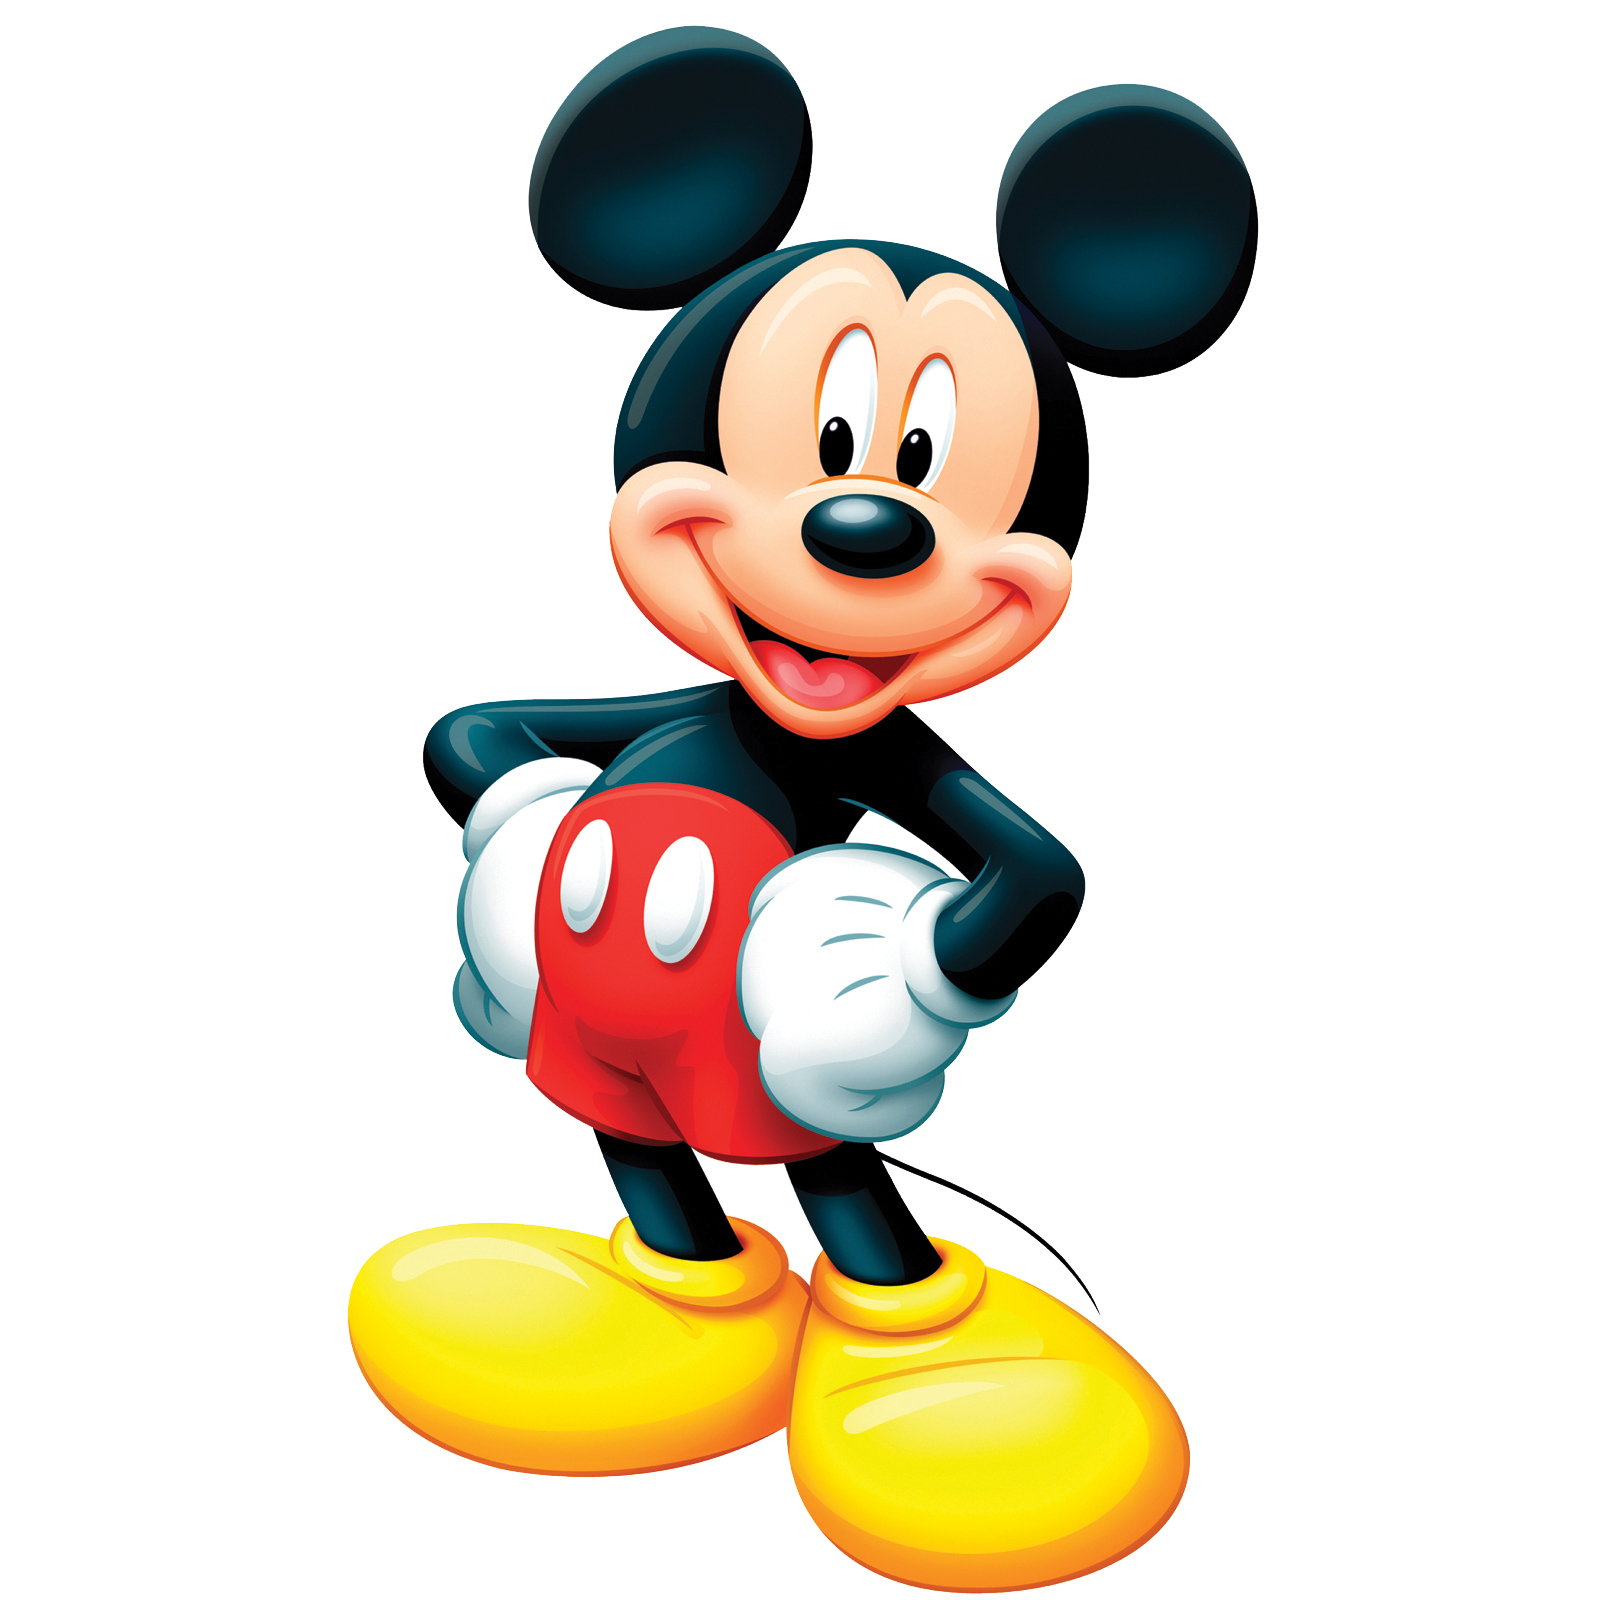 Disney Miickey Mouse Standup